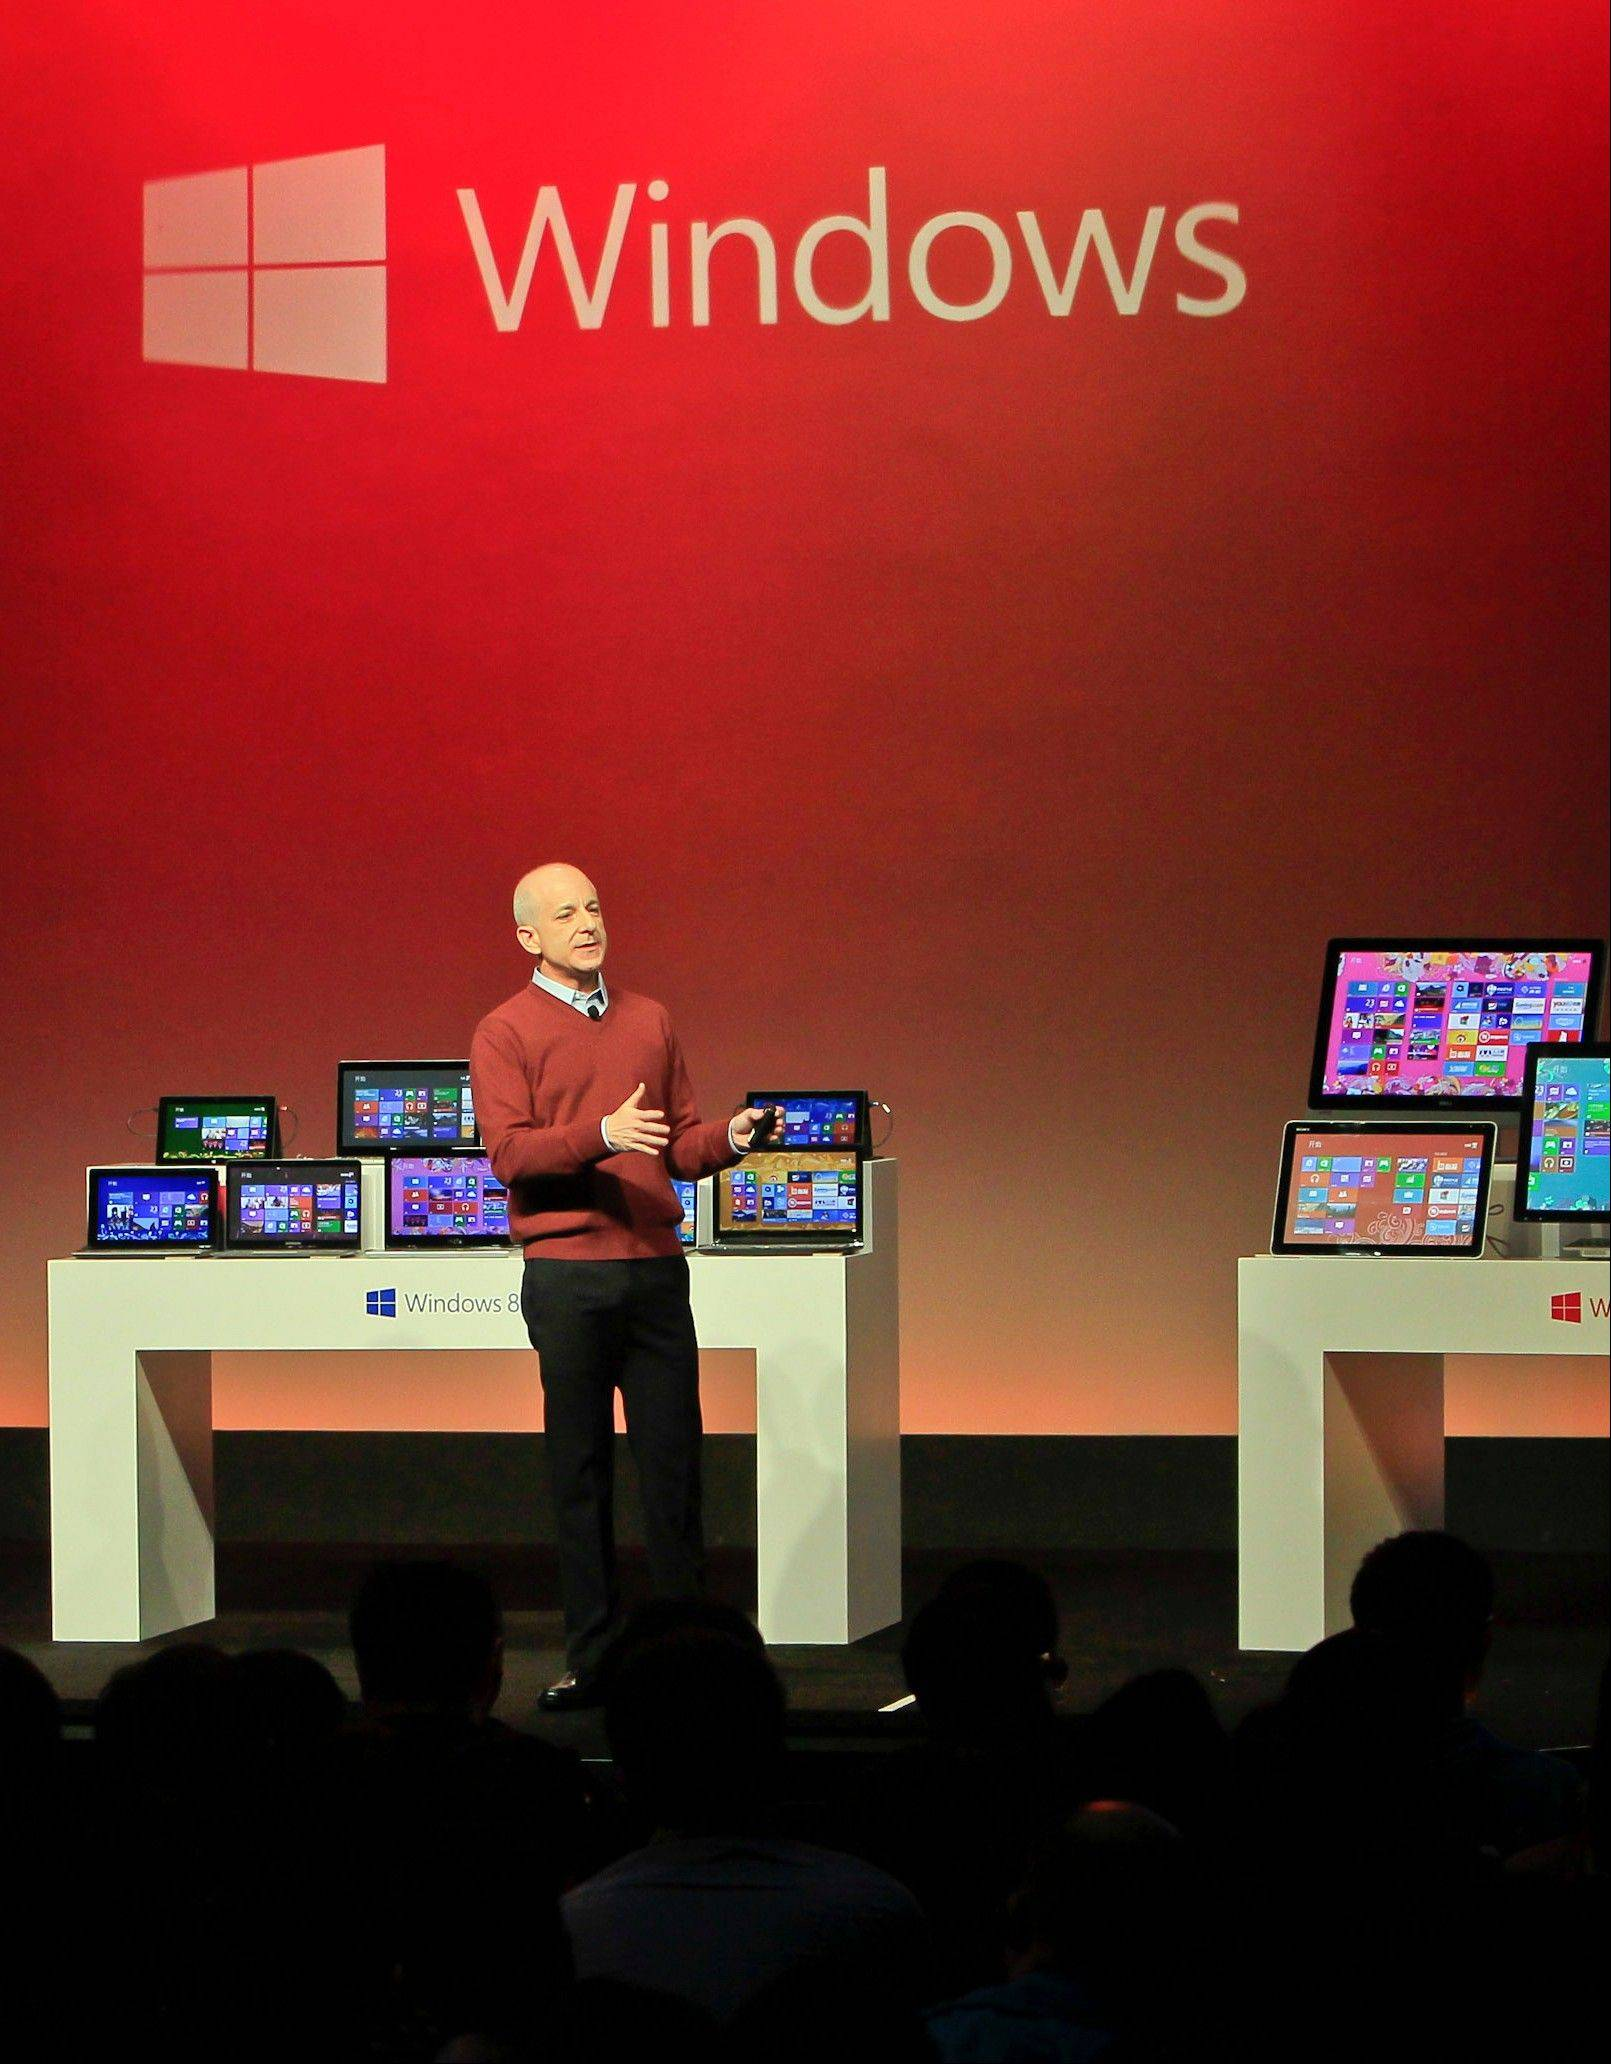 How you can get, or avoid, Windows 8